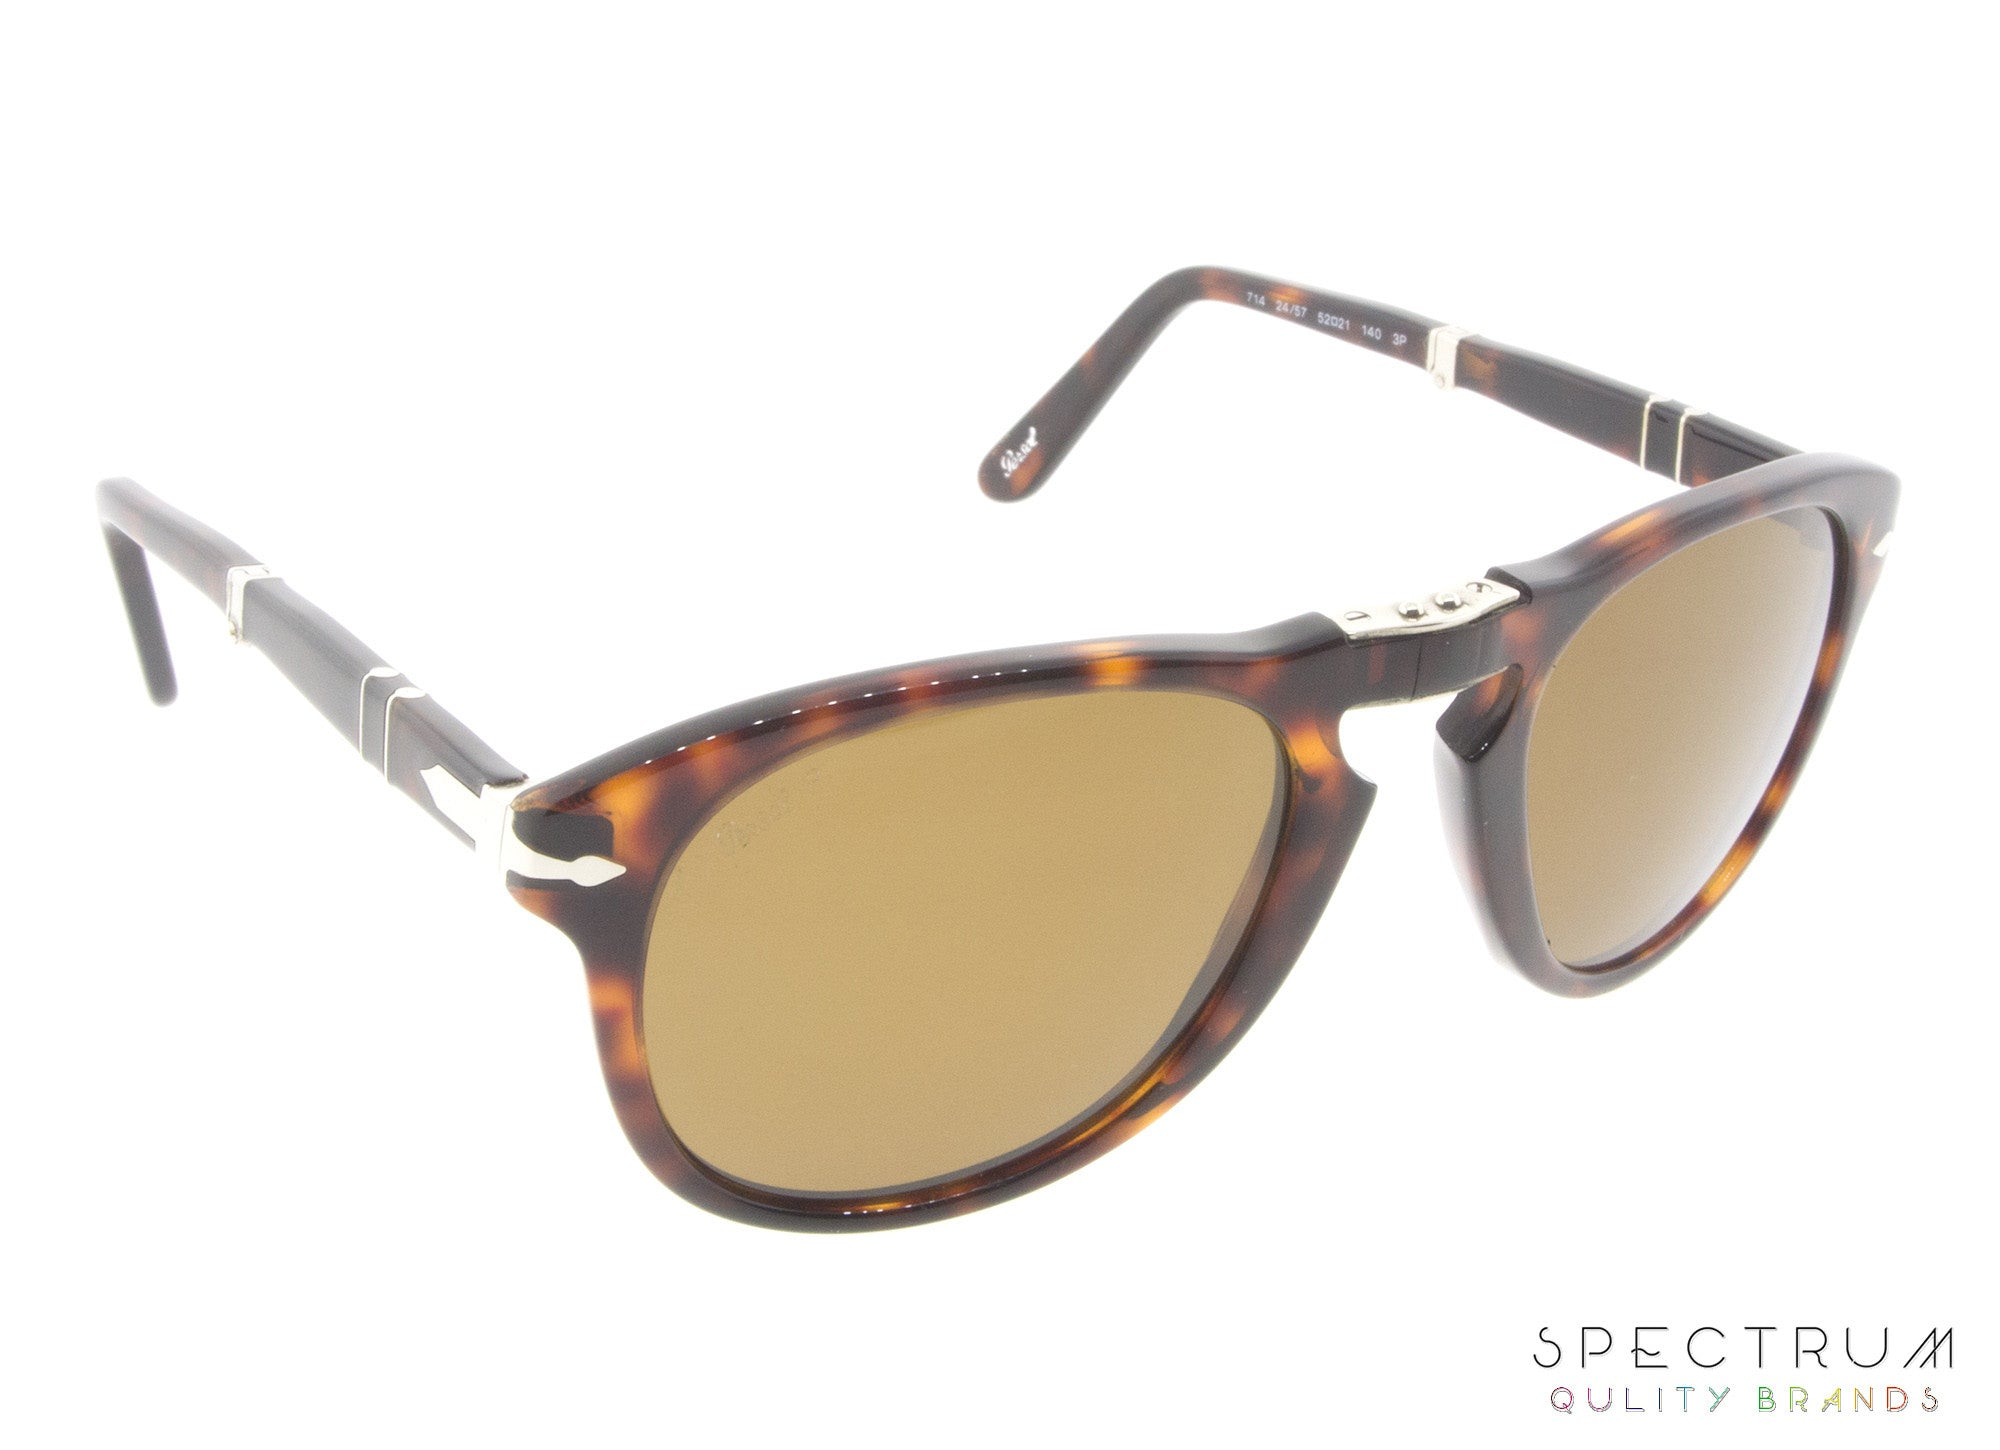 60951f08435 Persol Folding Sunglasses 0714 24 57 Havana with Brown Polarized Lenses  Size 52